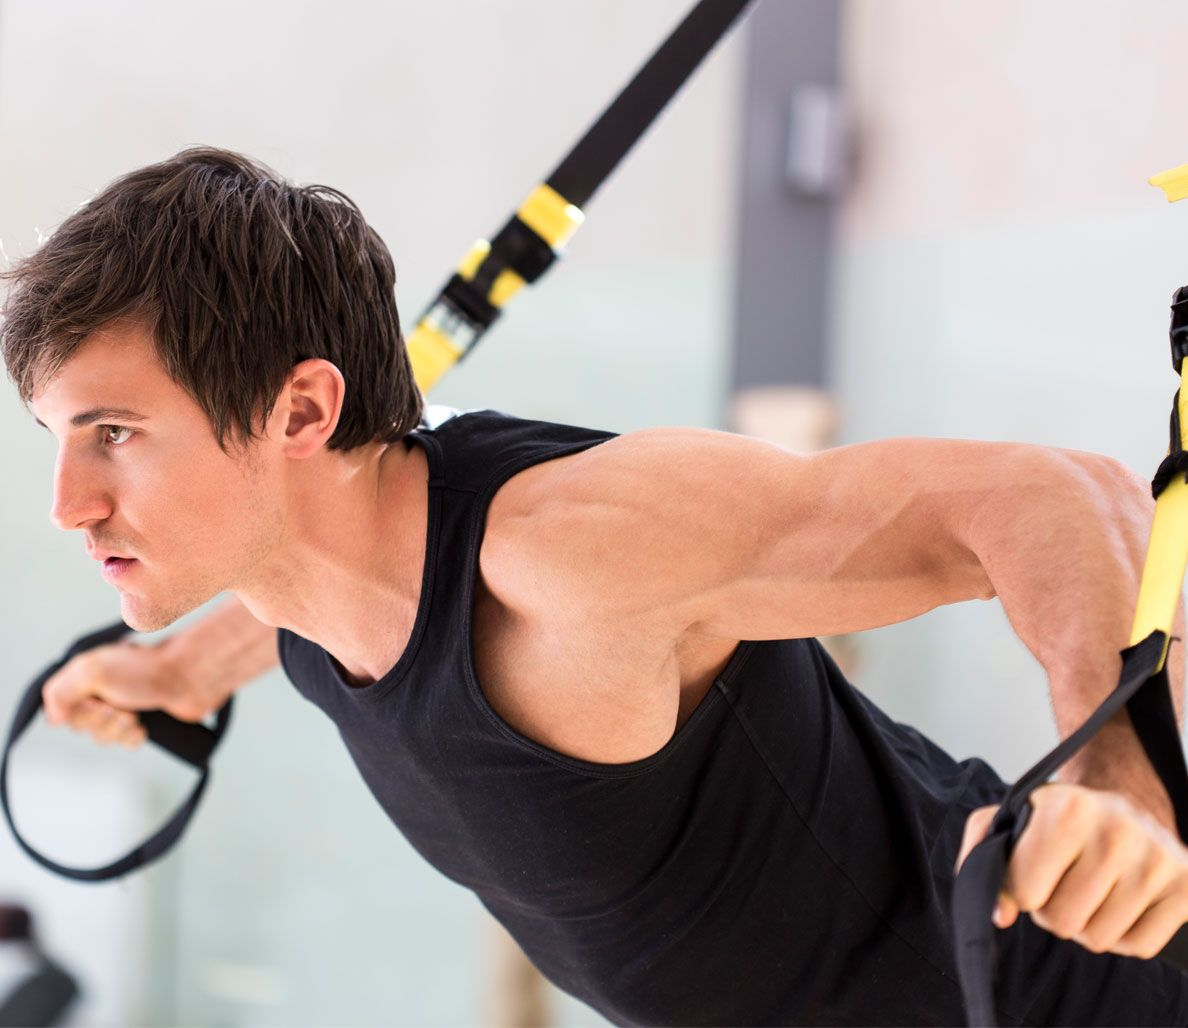 Sick of weightlifting the old-school way? Try these suspension training moves that'll kick your ass and give you the muscle-building workout you crave.